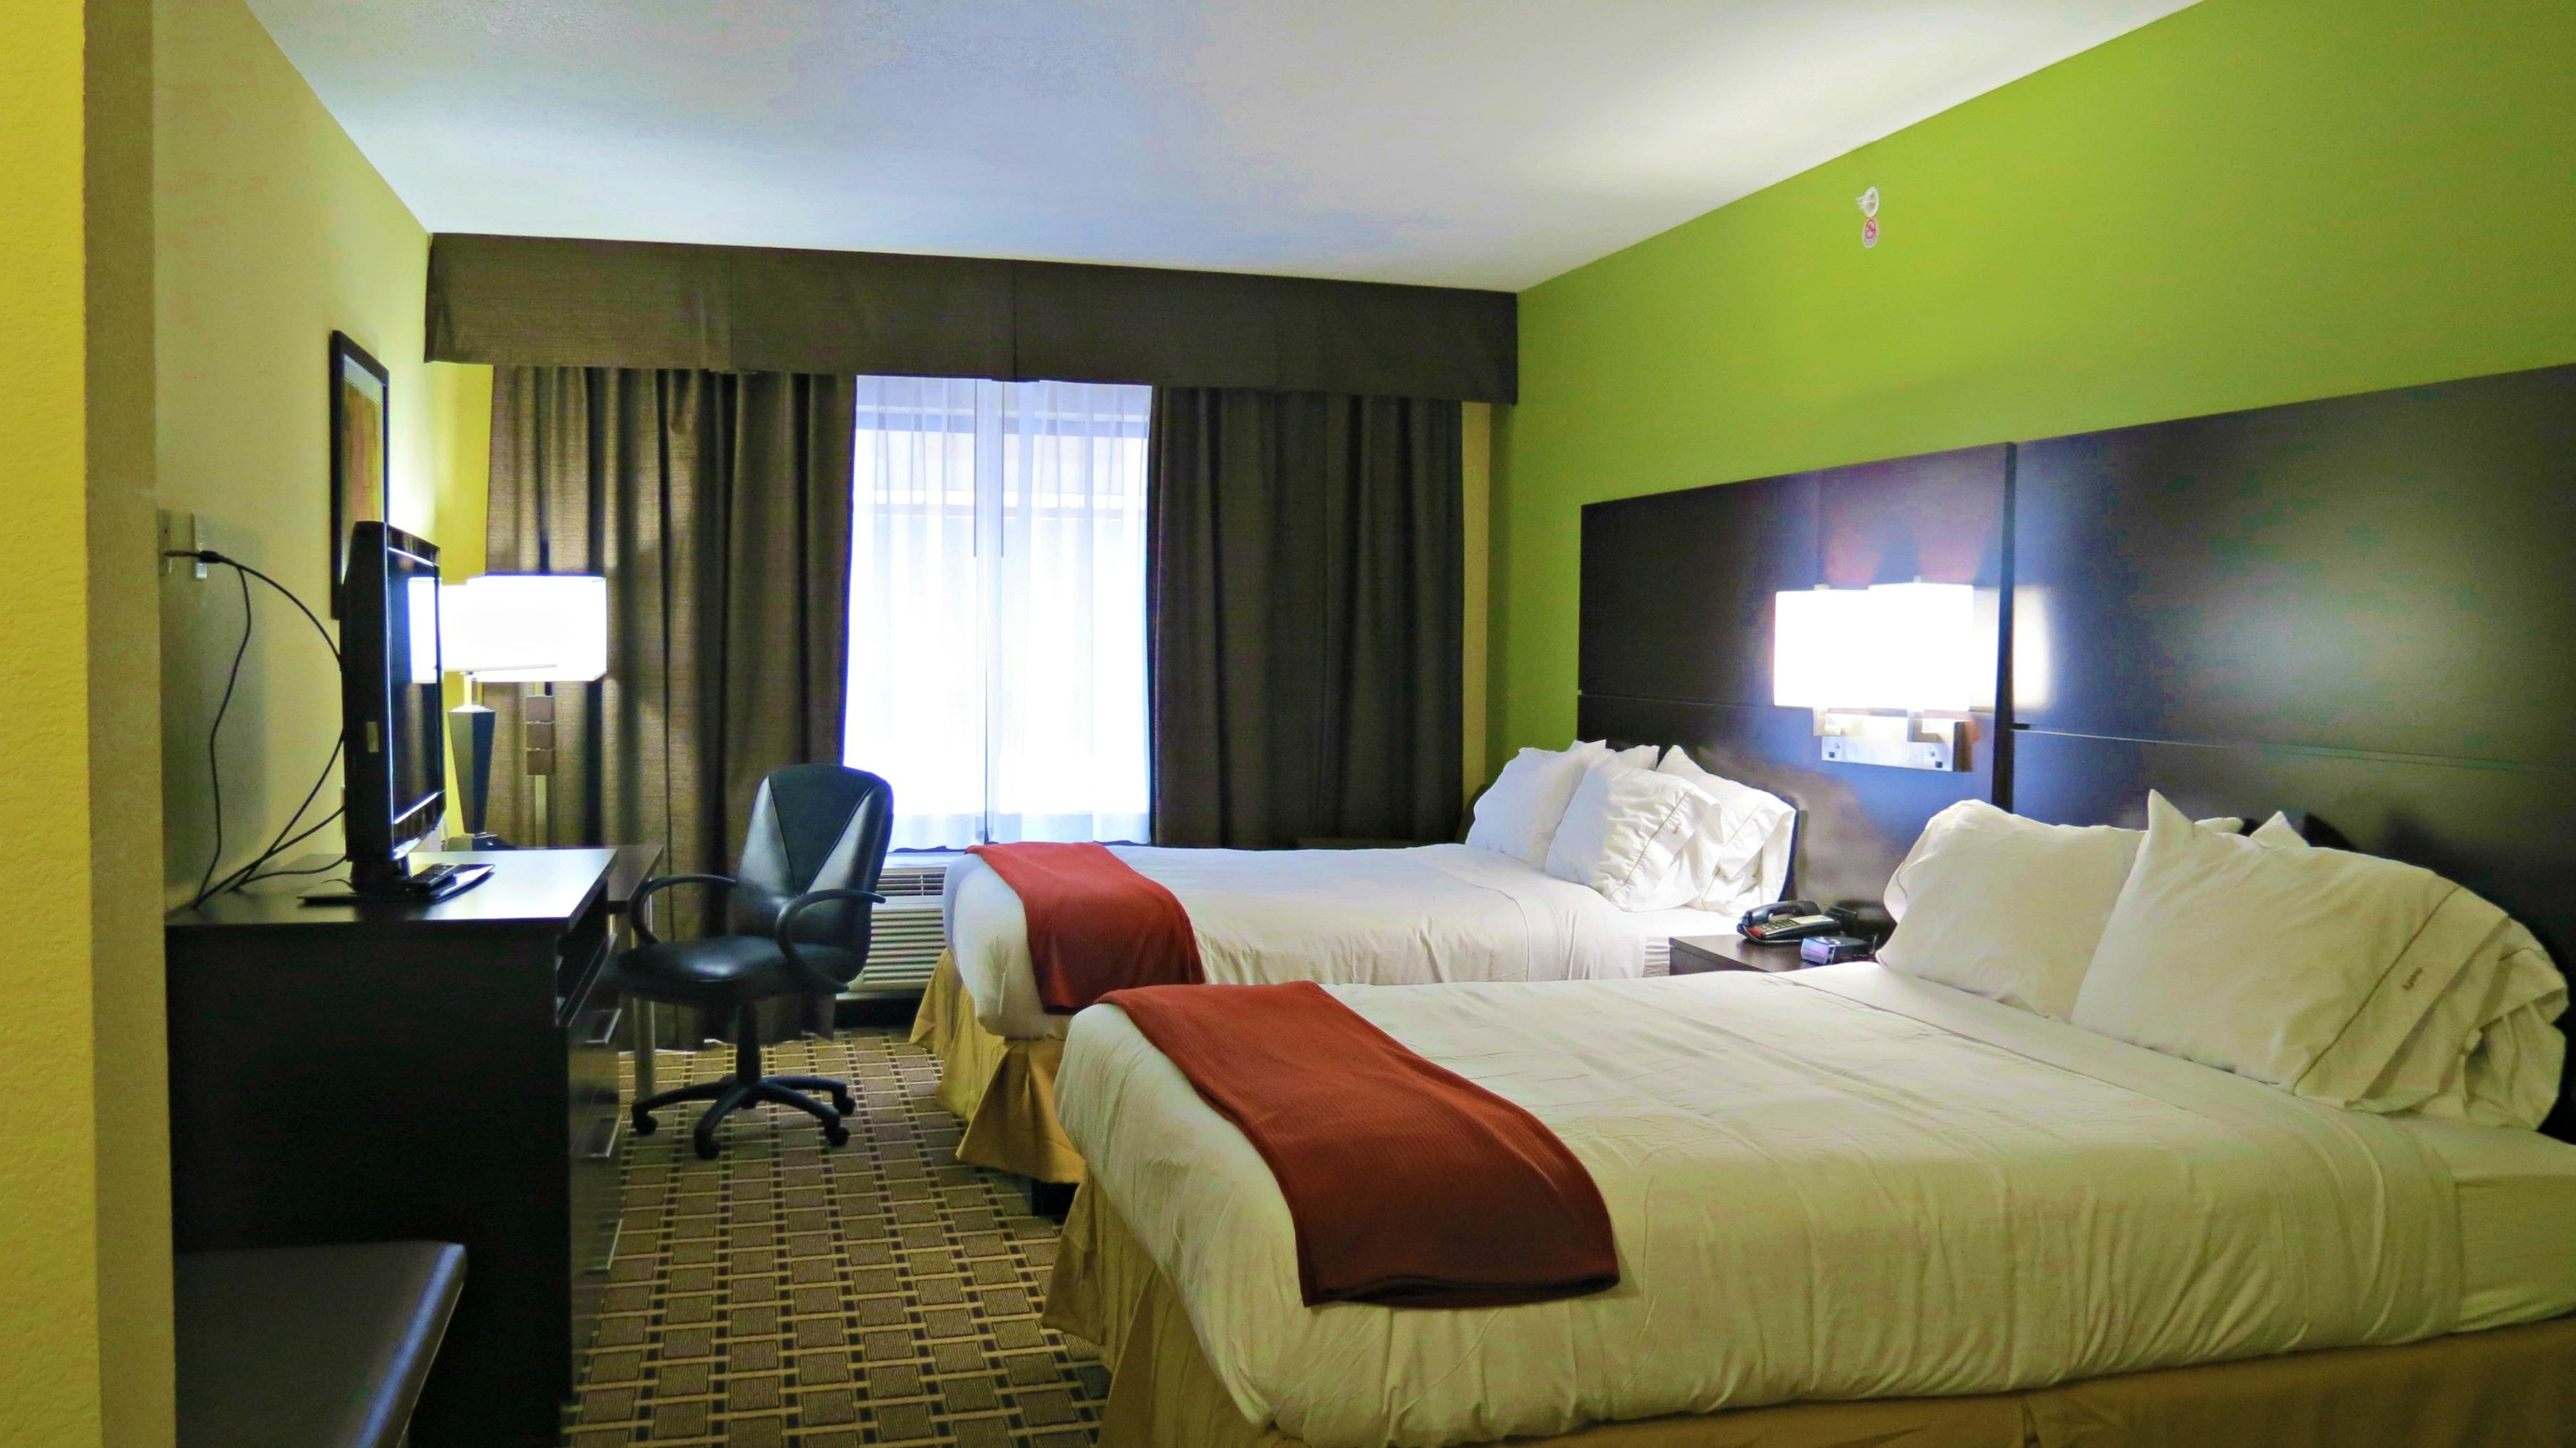 Holiday Inn Express & Suites image 9